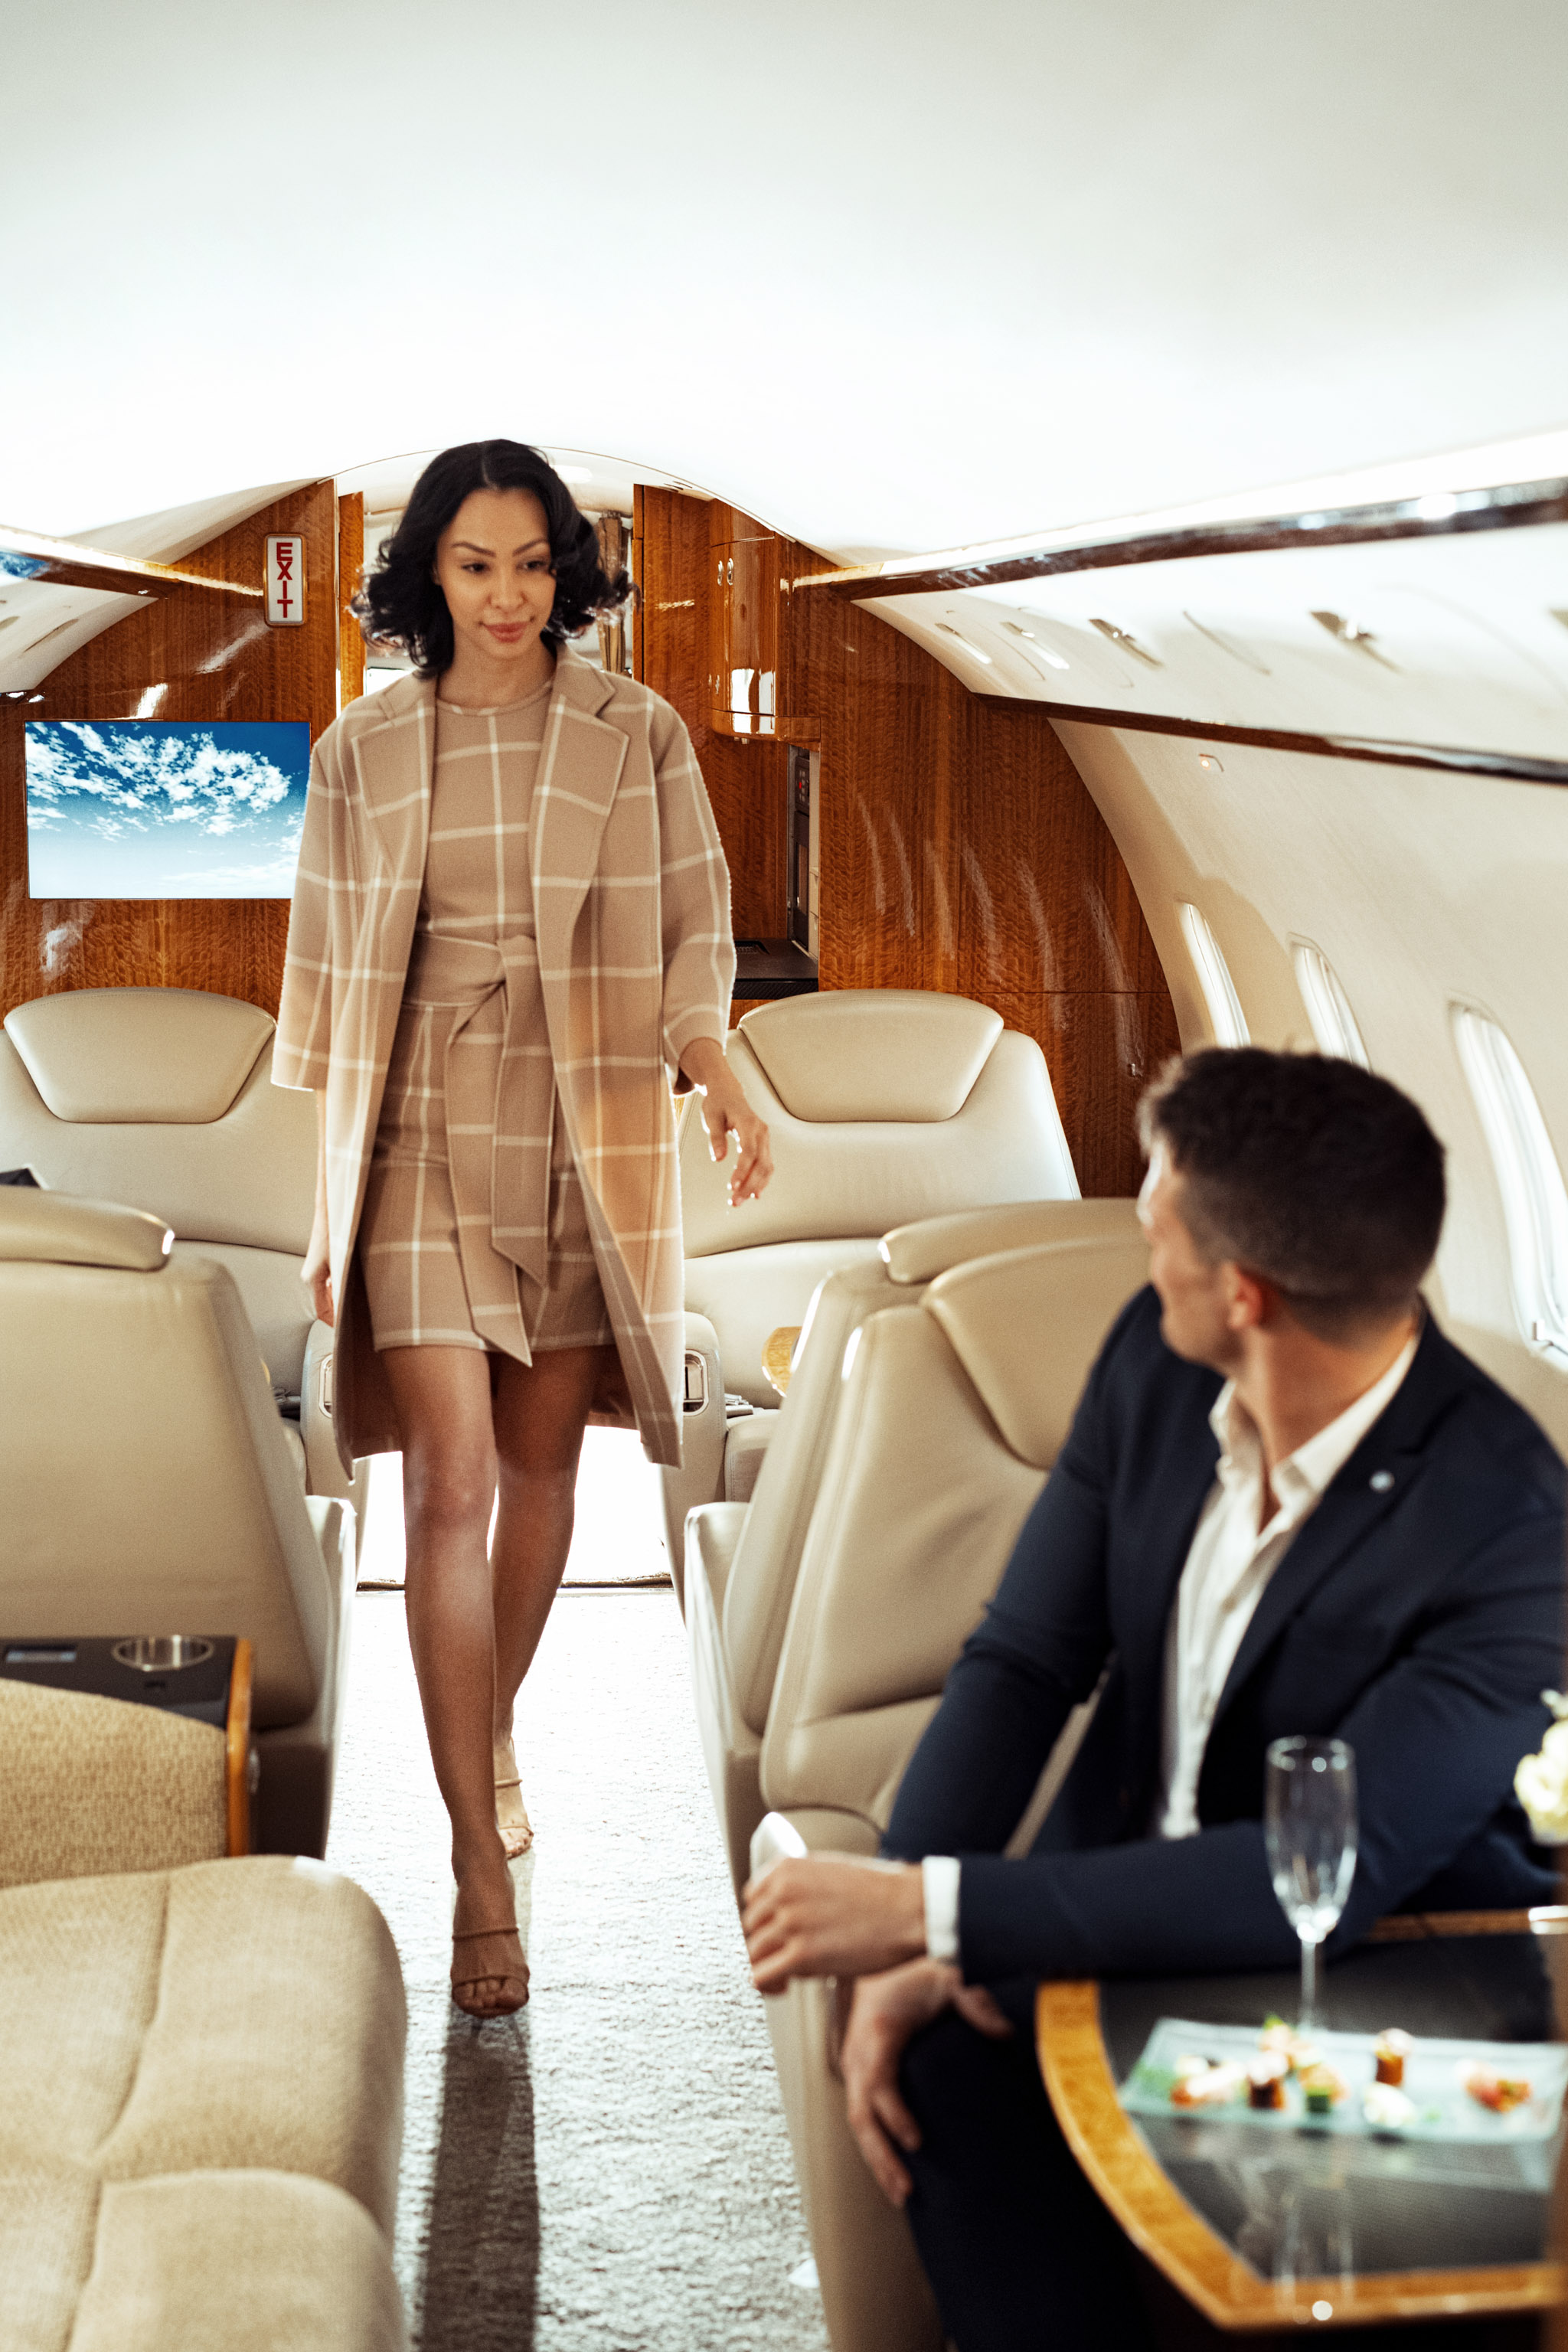 commercial photoshoot of boarding to private jet flight experience